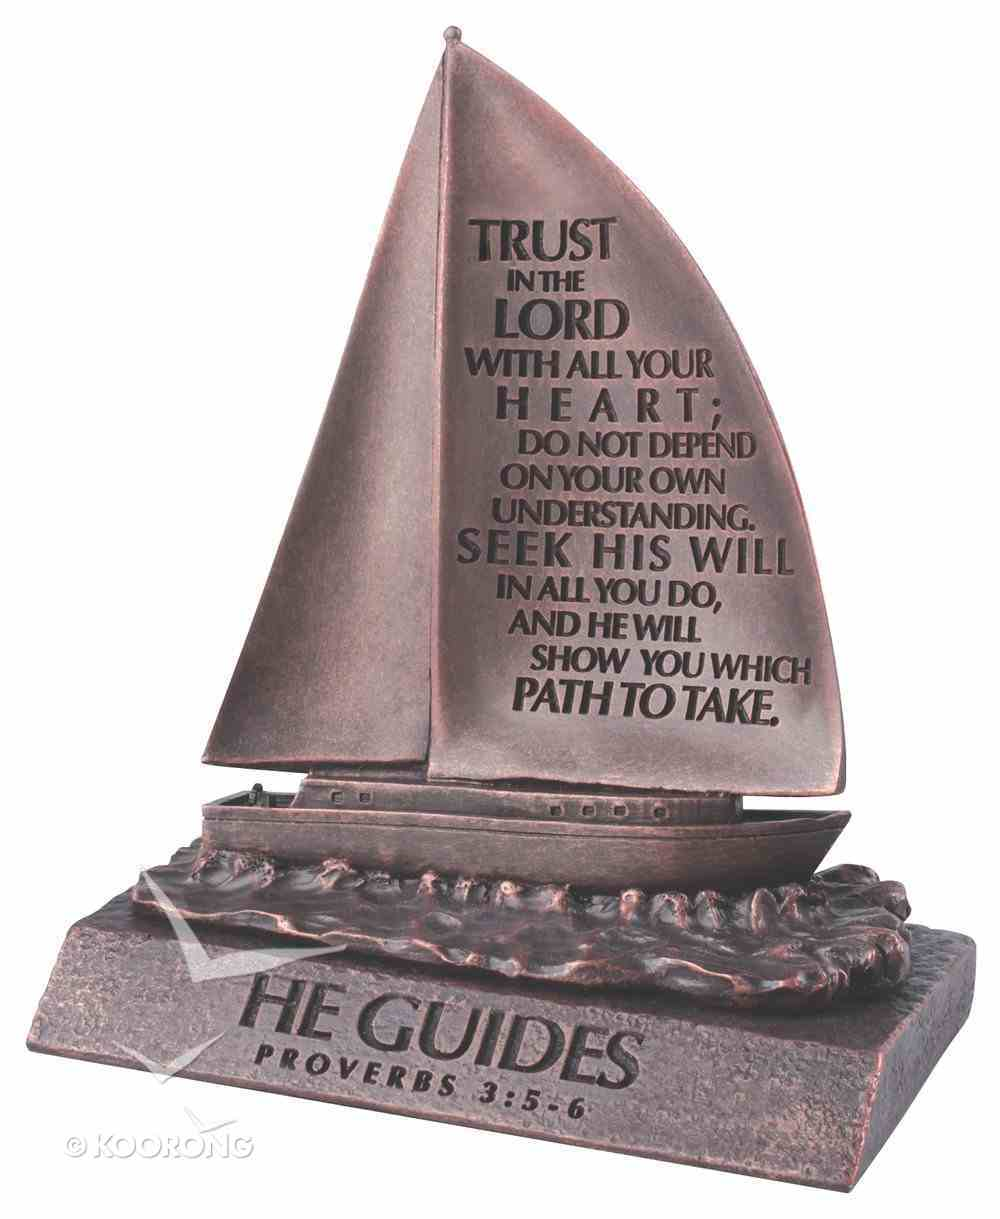 Moment of Faith Small Bronze Sculpture: He Guides Sailboat Cast Stone (Prov 3:5-6) Plaque